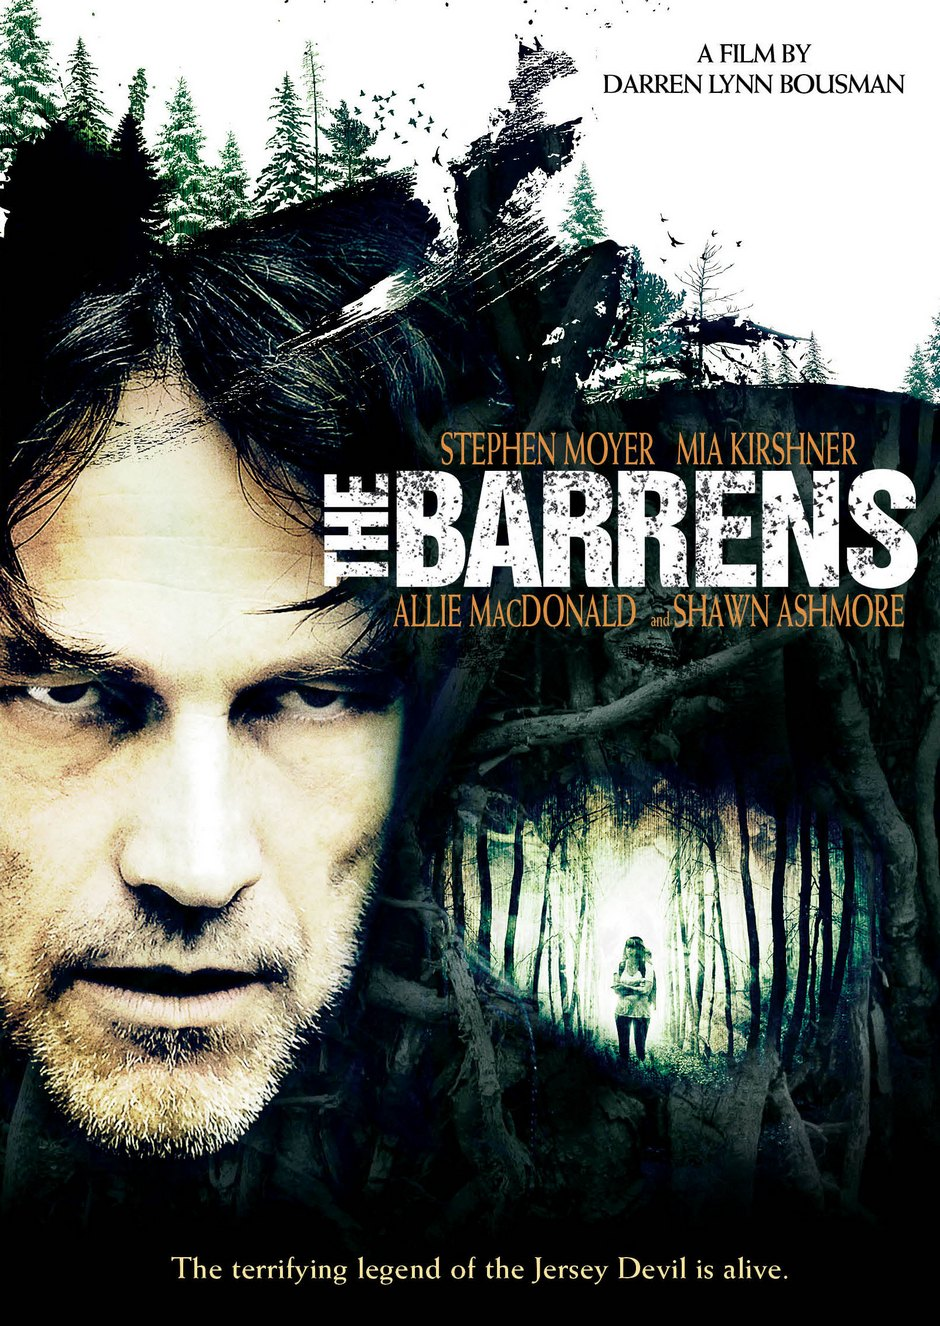 The-Barrens-2012-Movie-Poster.jpg